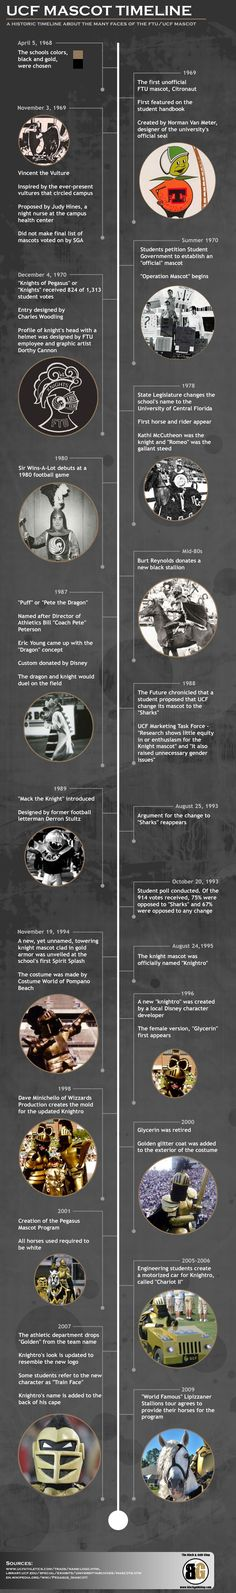 UCF Knights Mascot Timeline Infographic